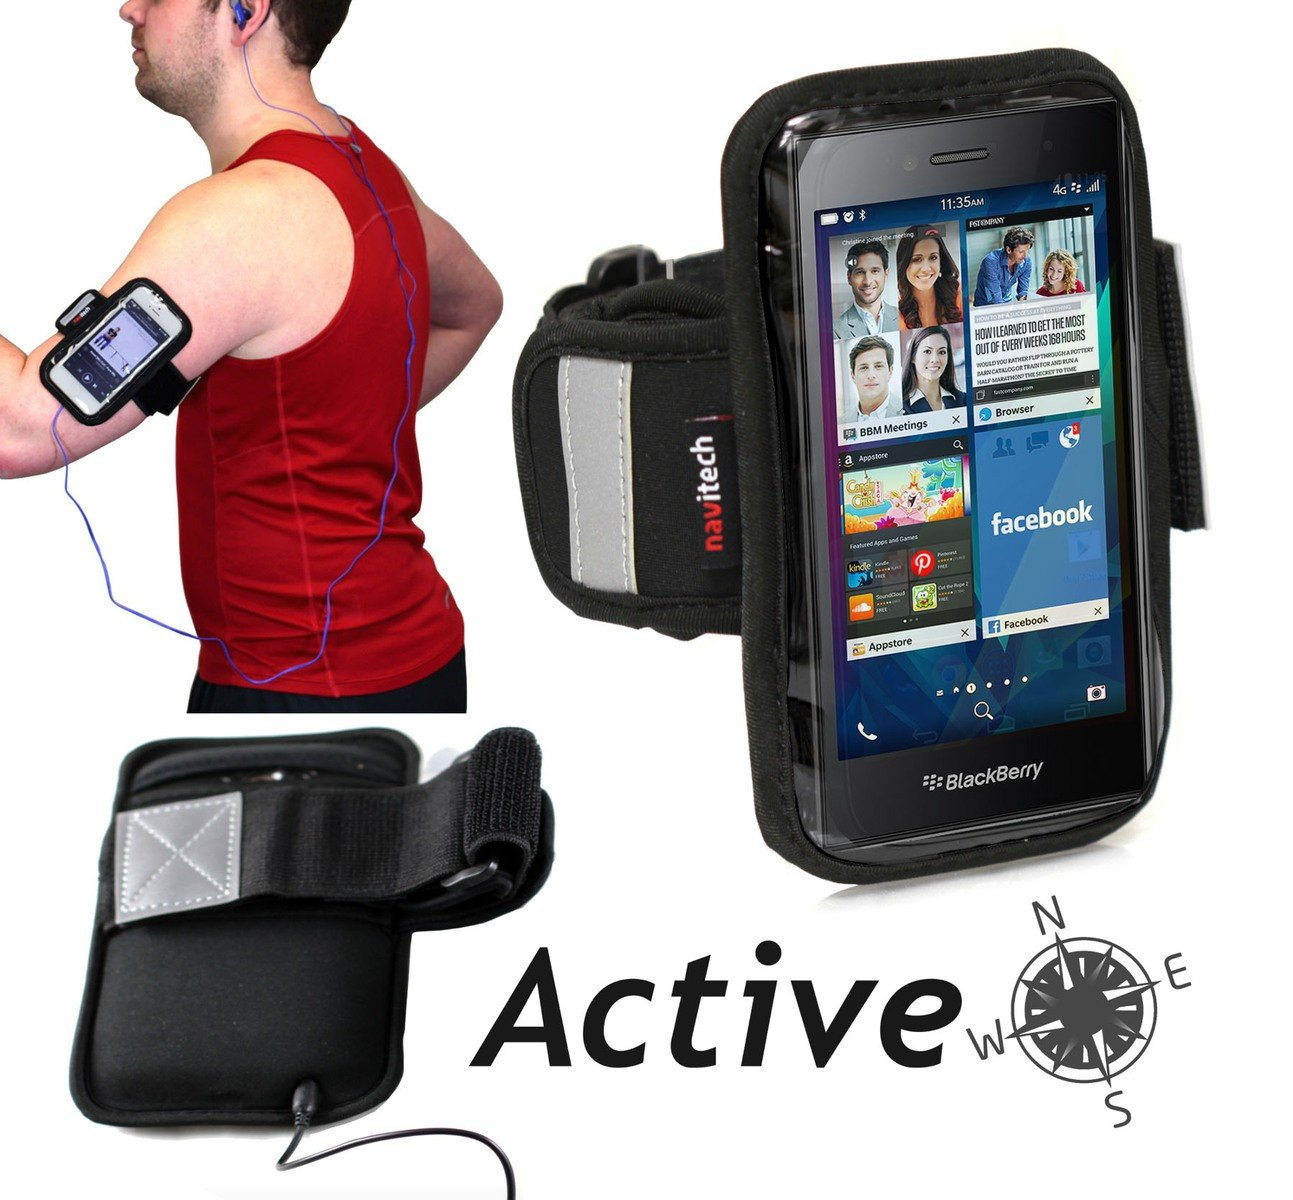 Navitech Black / Silver Neoprene Water Resistant Sports Gym, Jogging / Running Armband Case with Light Reflection Strip + key holder for the Apple iPod Touch 3rd, 4th & 5th generations inc 8 GB, 16 GB, 32GB, 64GB + IPOD NANO 7TH GEN